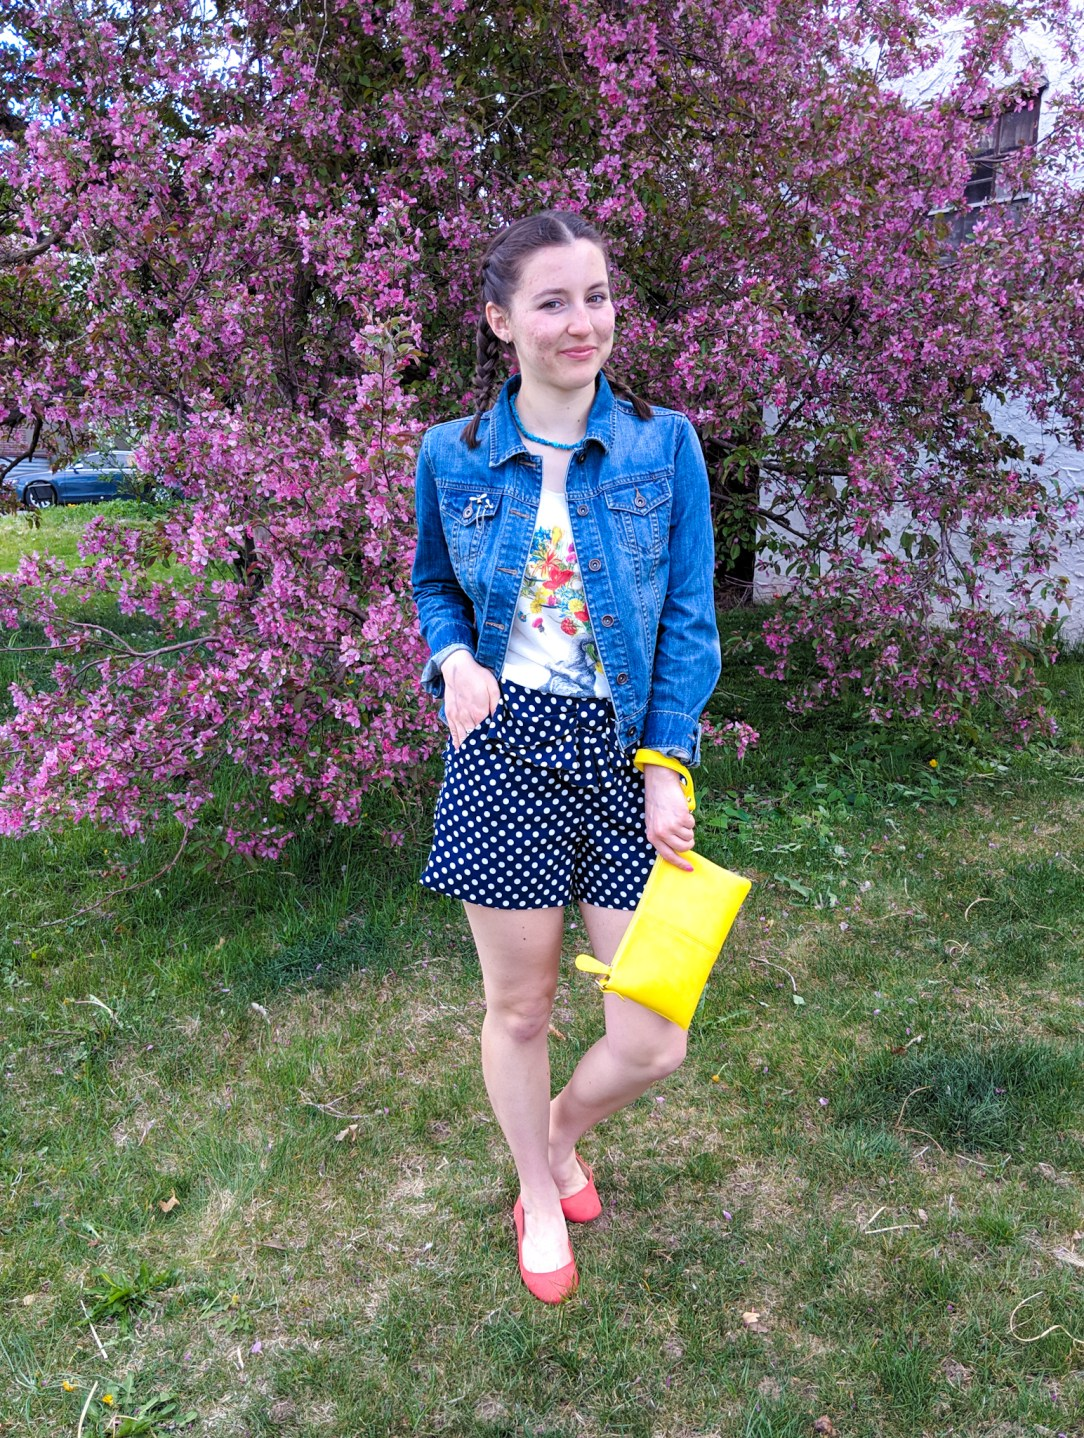 jean jacket, floral graphic tee, polka dot shorts, yellow purse, orange shoes